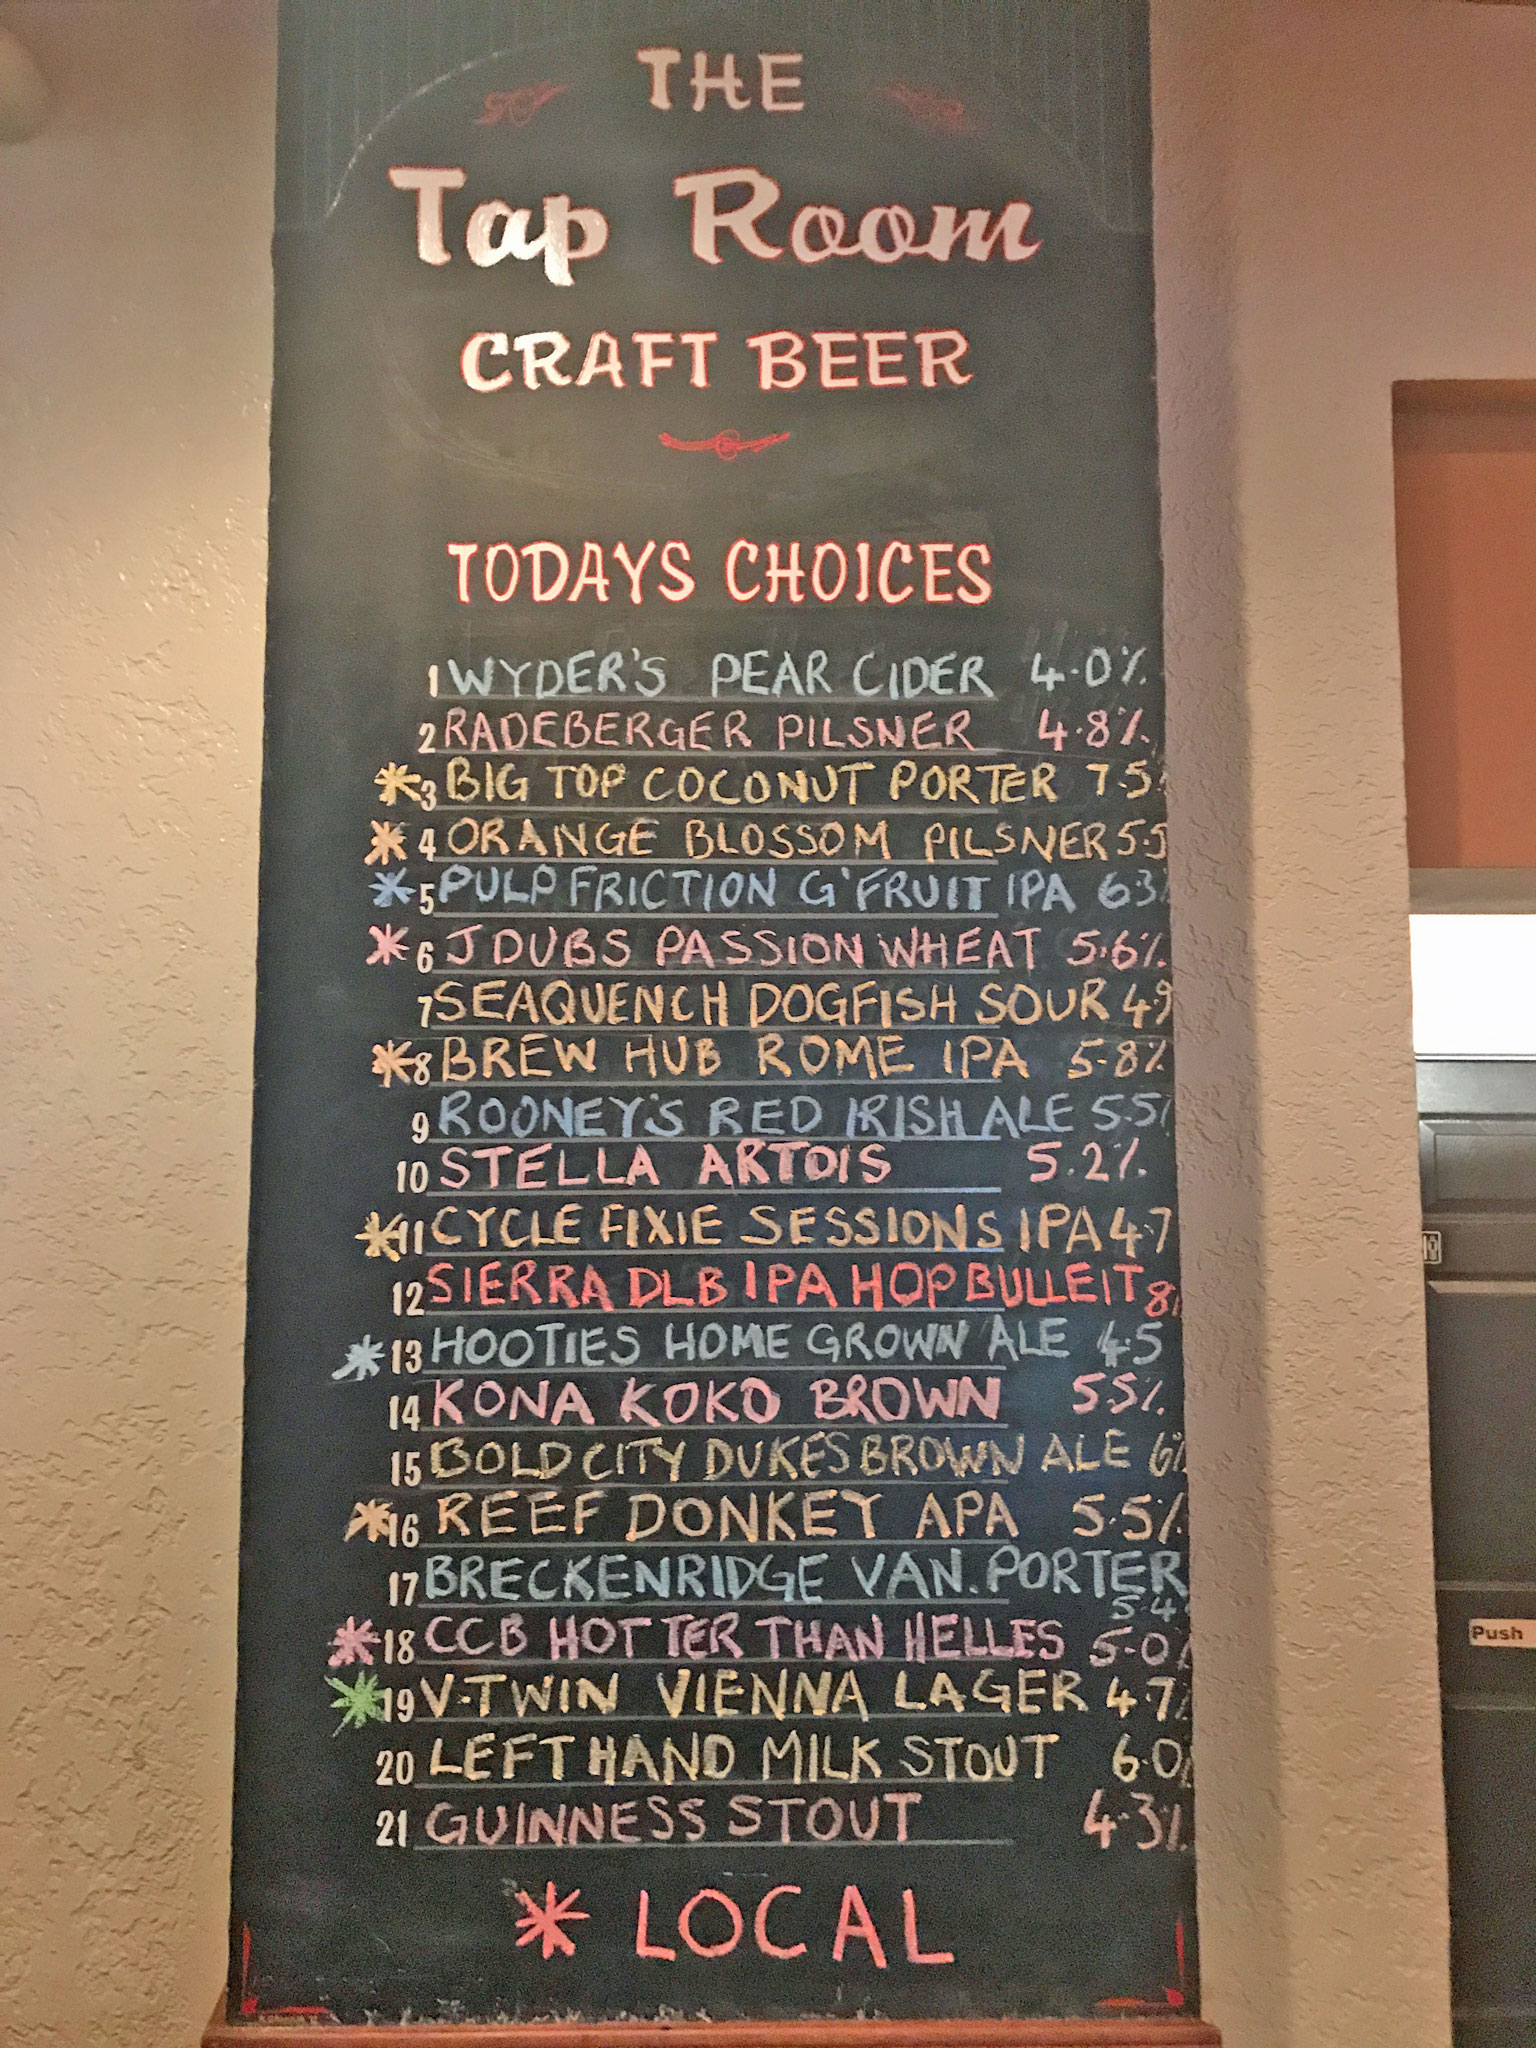 Craft Beers at The Tap Room